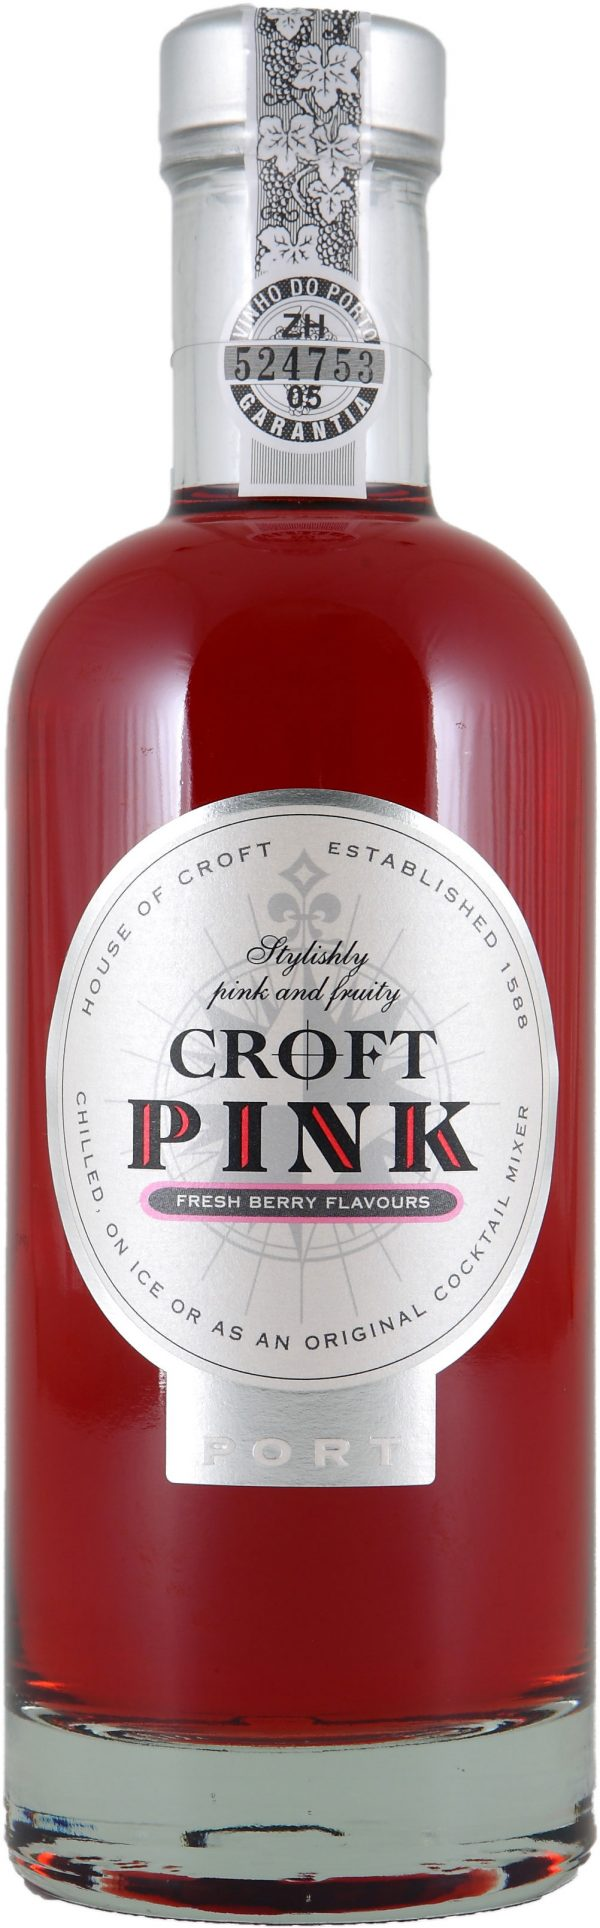 Croft - Pink 50cl Bottle